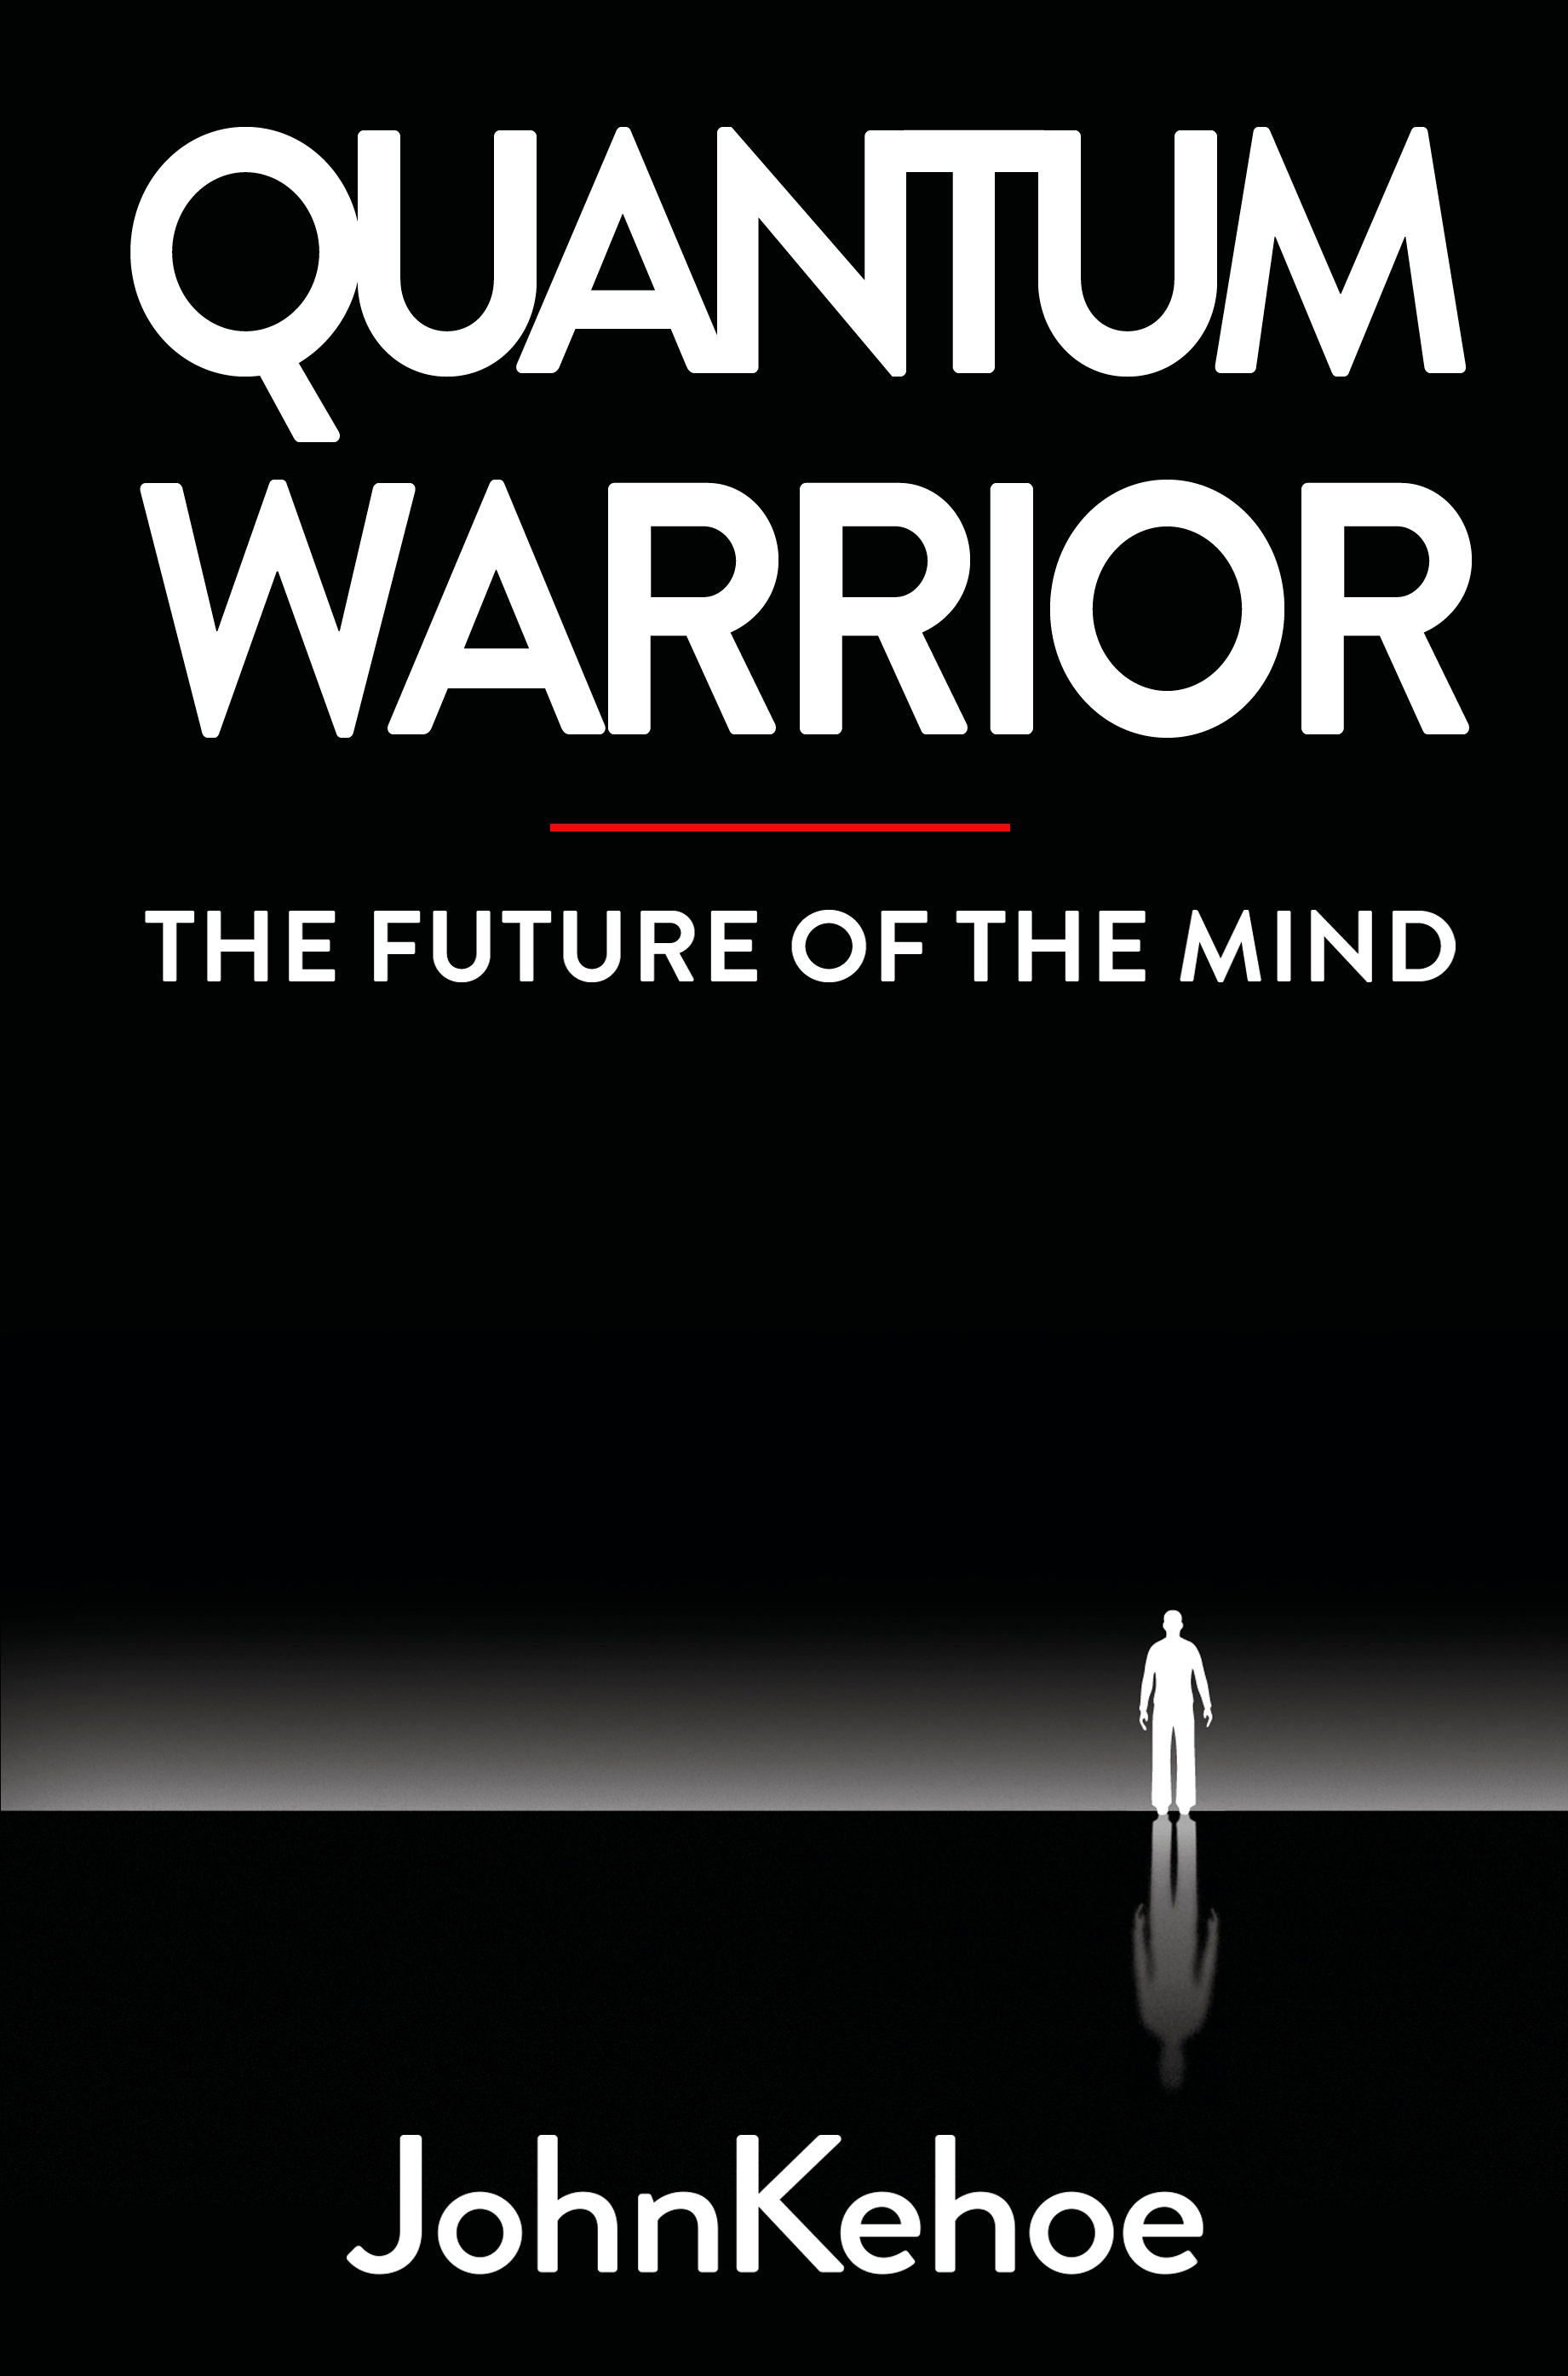 Quantum Warrior: The Future of the Mind - John Kehoe - quotes, rating, reviews, where to buy